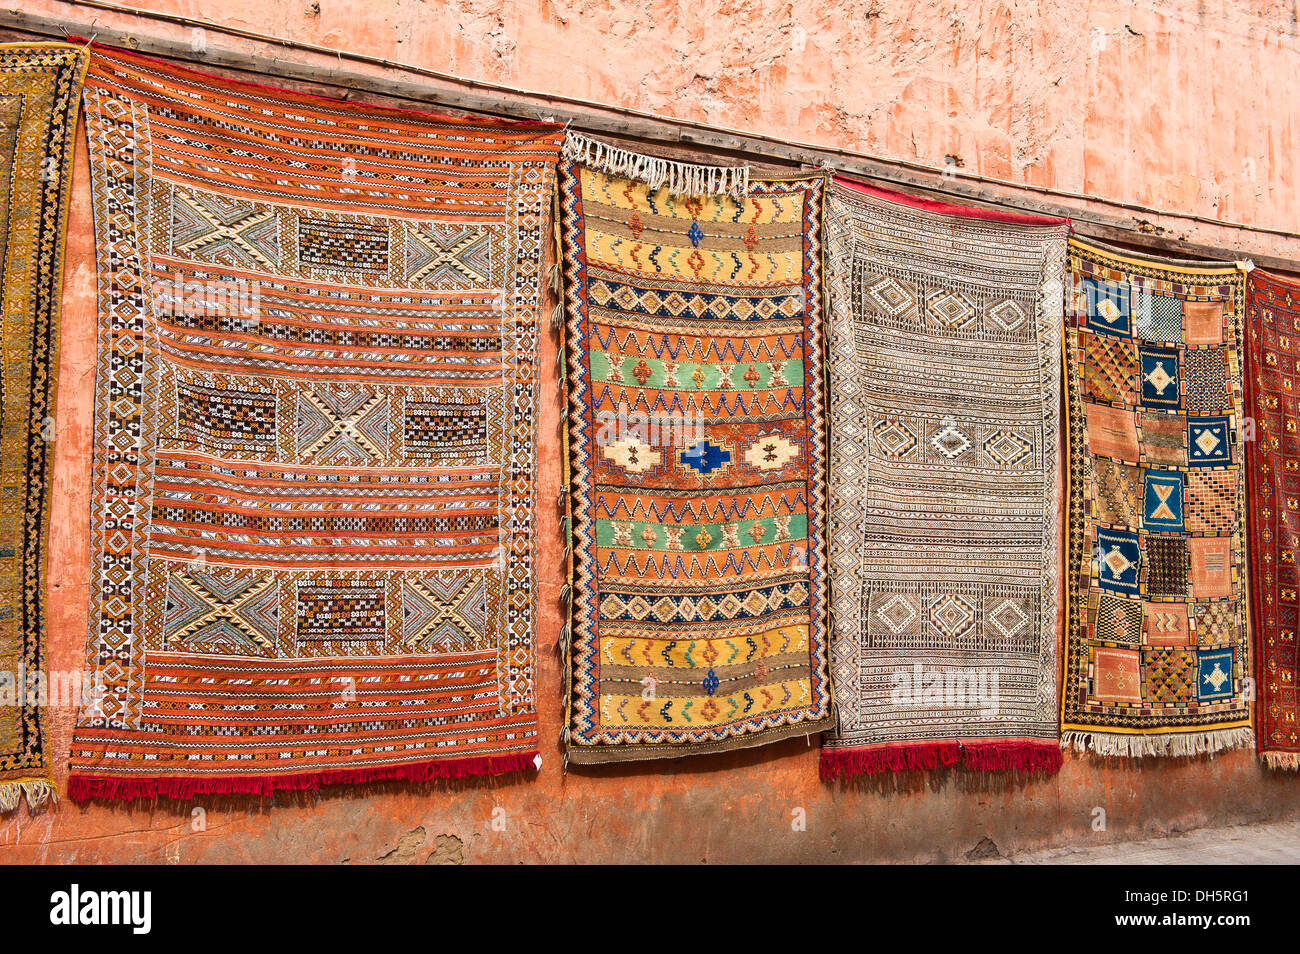 Hanging Rugs Carpets Or Rugs With Arab And Berber Symbols And Patterns Hanging